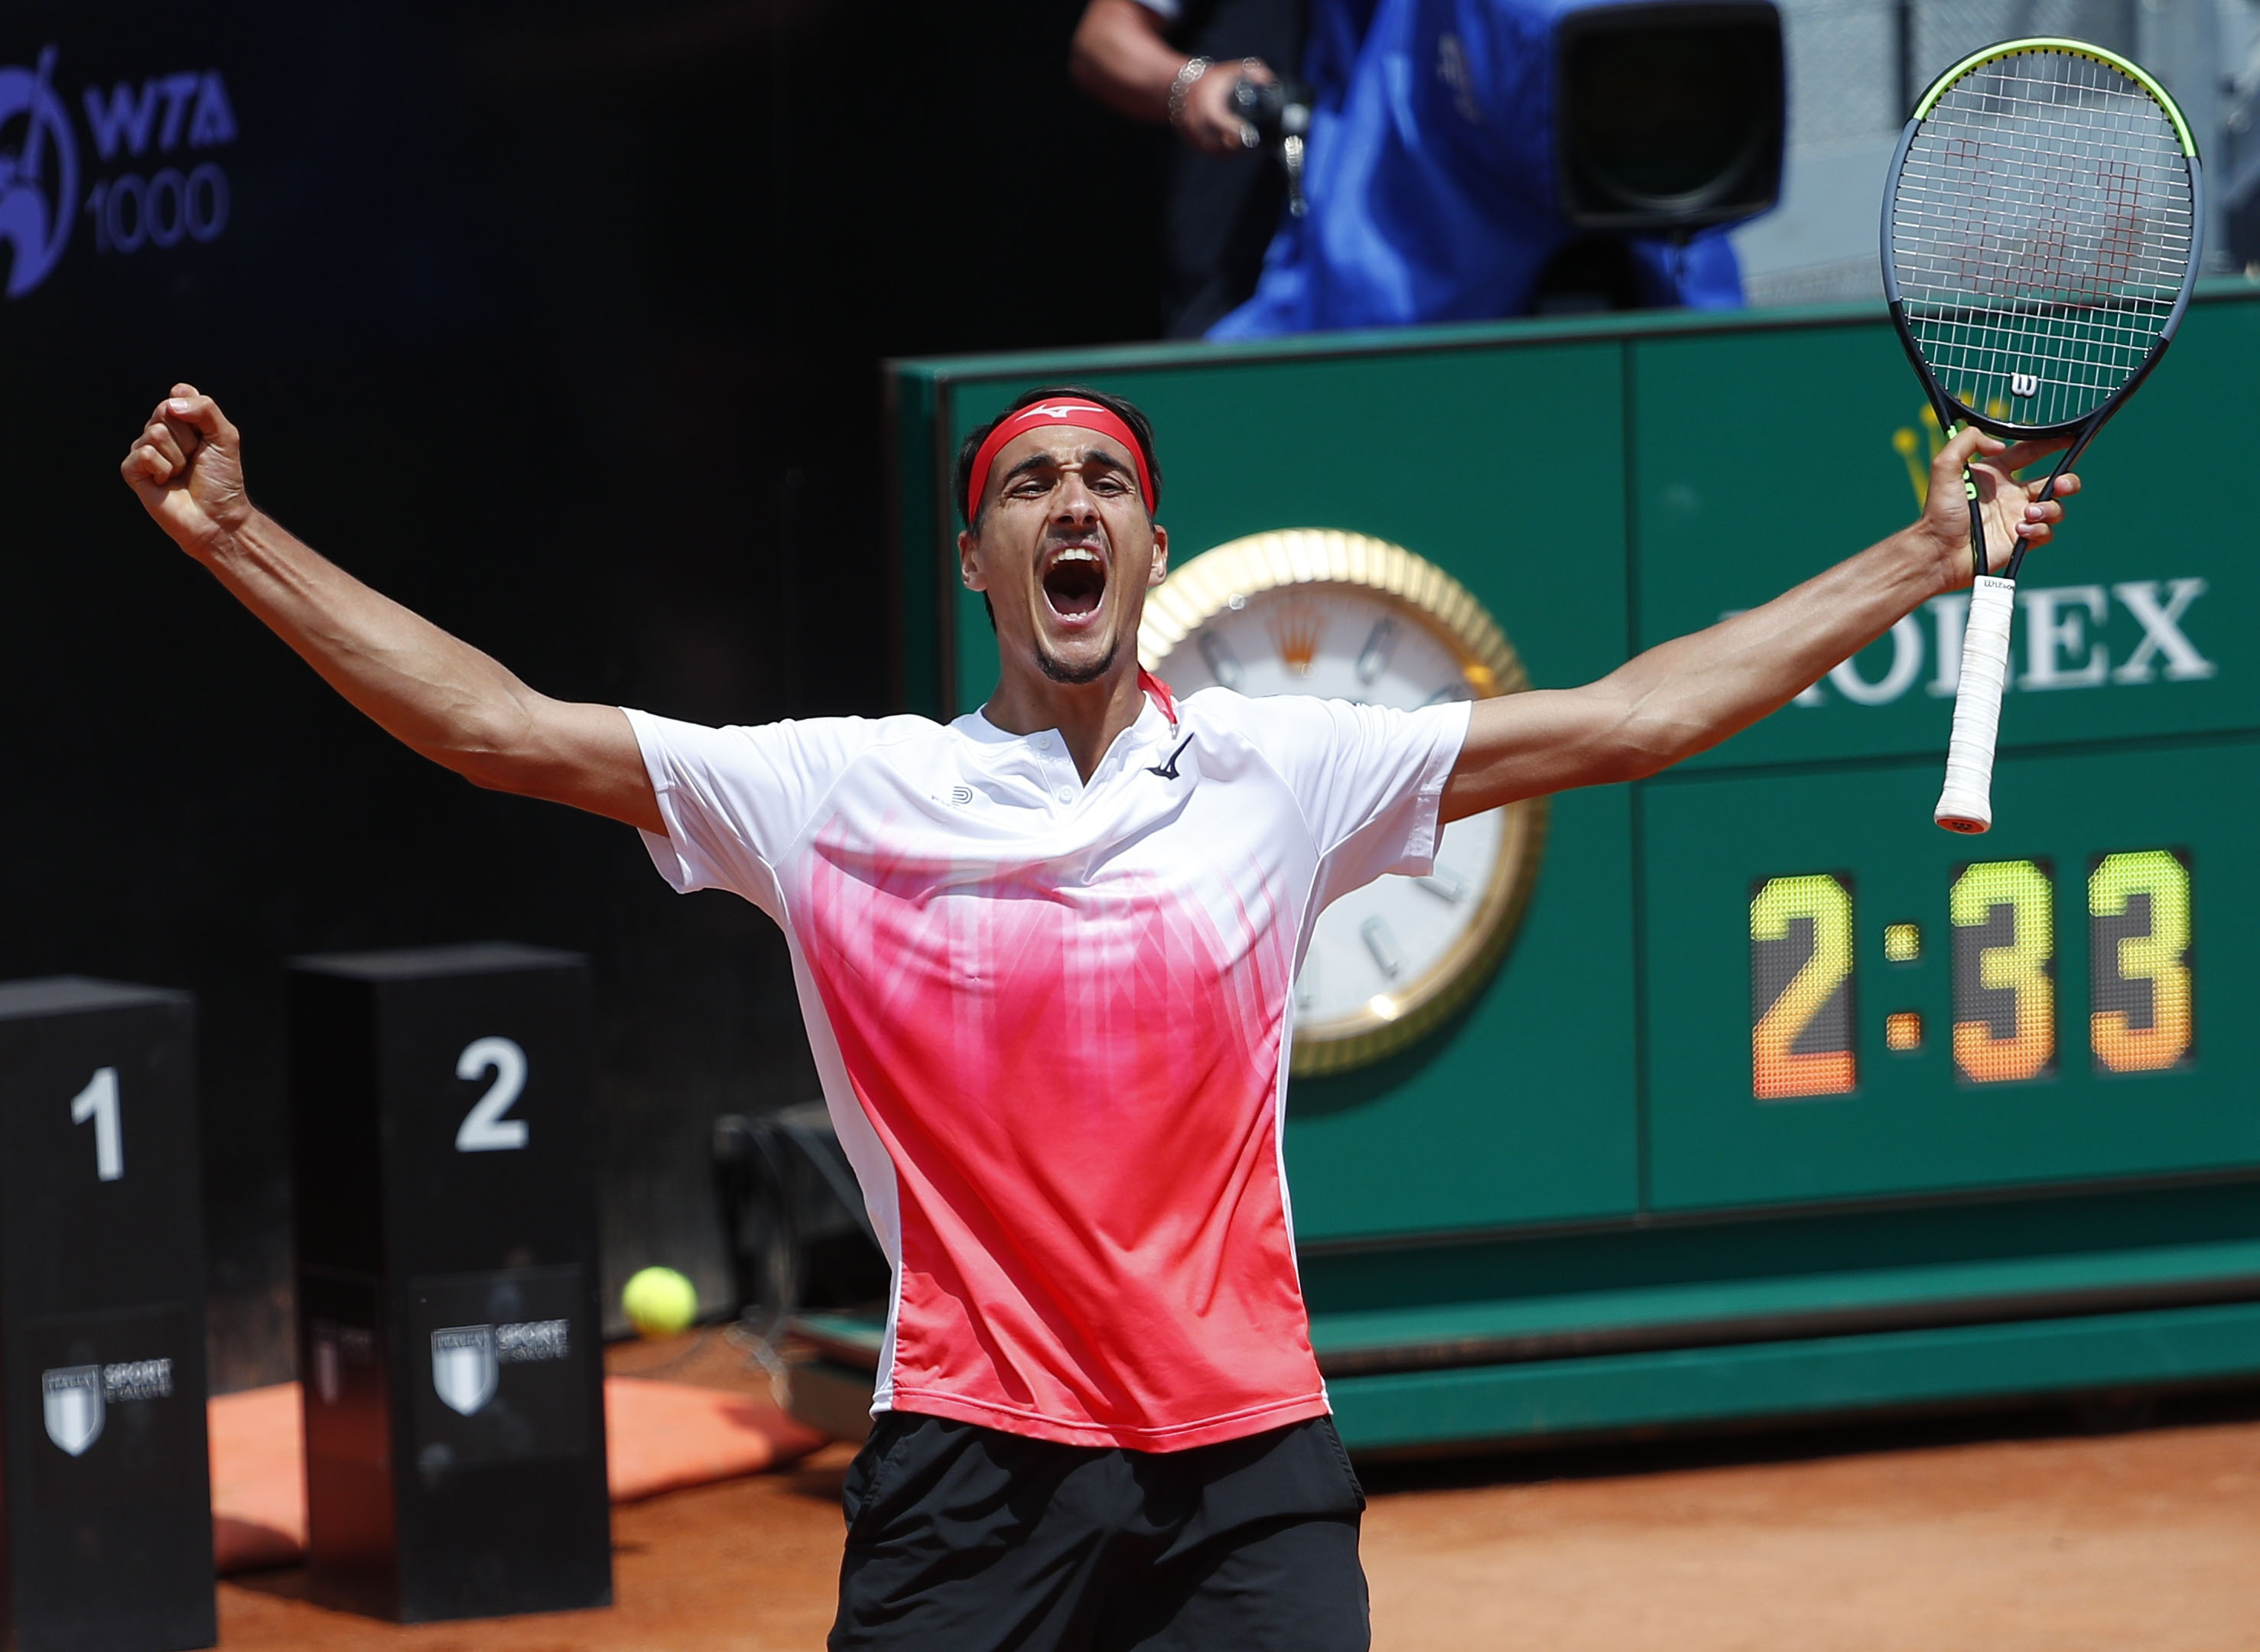 Tennis - ATP Masters 1000 - Italian Open - Foro Italico, Rome, Italy - May 15, 2021 Italy's Lorenzo Sonego celebrates winning his quarter final match against Russia's Andrey Rublev REUTERS/Guglielmo Mangiapane